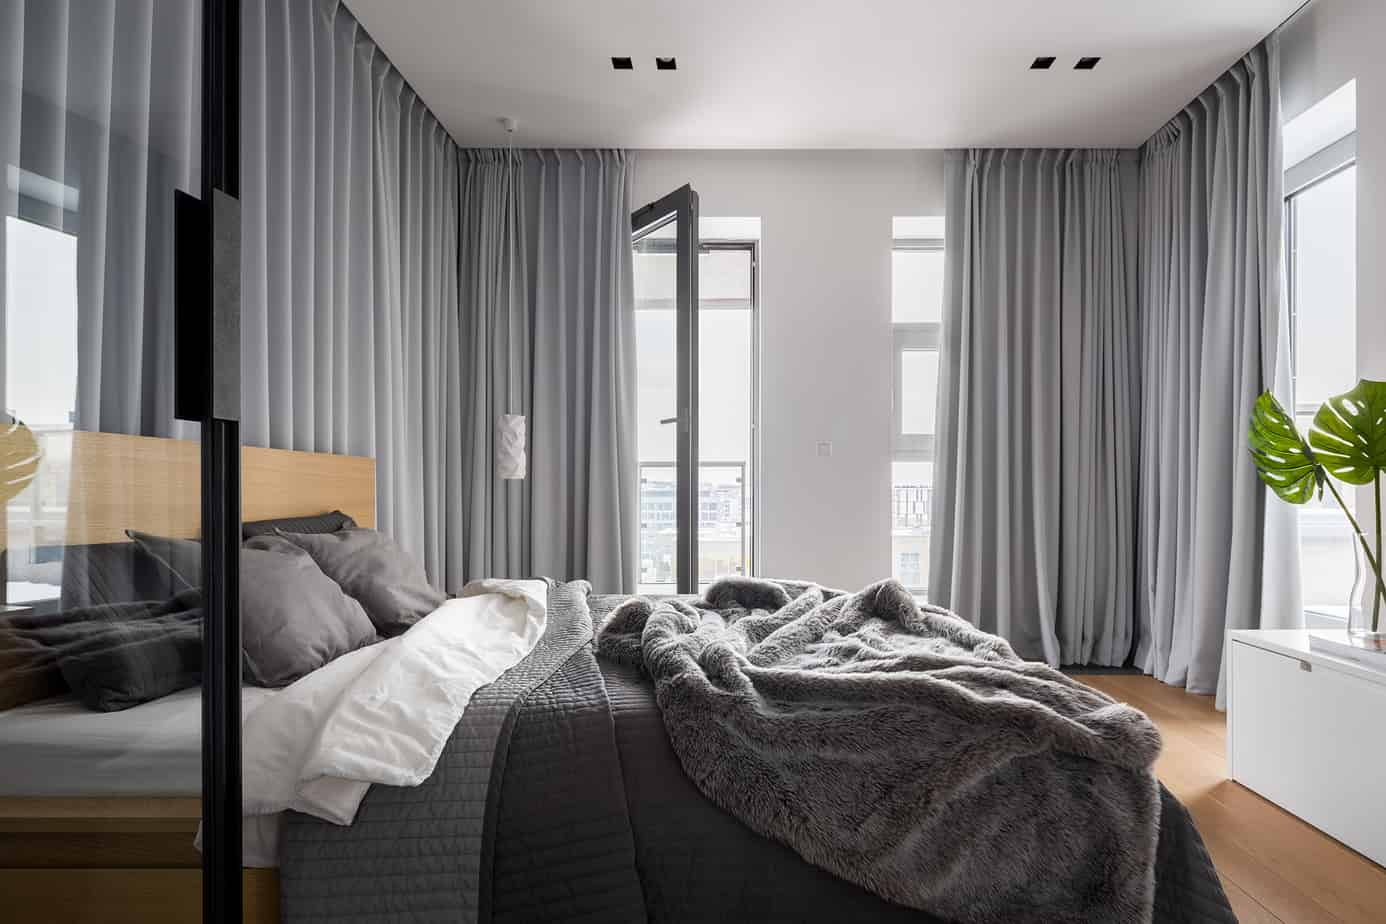 Top 10 Modern Curtain trends 2021 popular ideas, materials, designs and colors